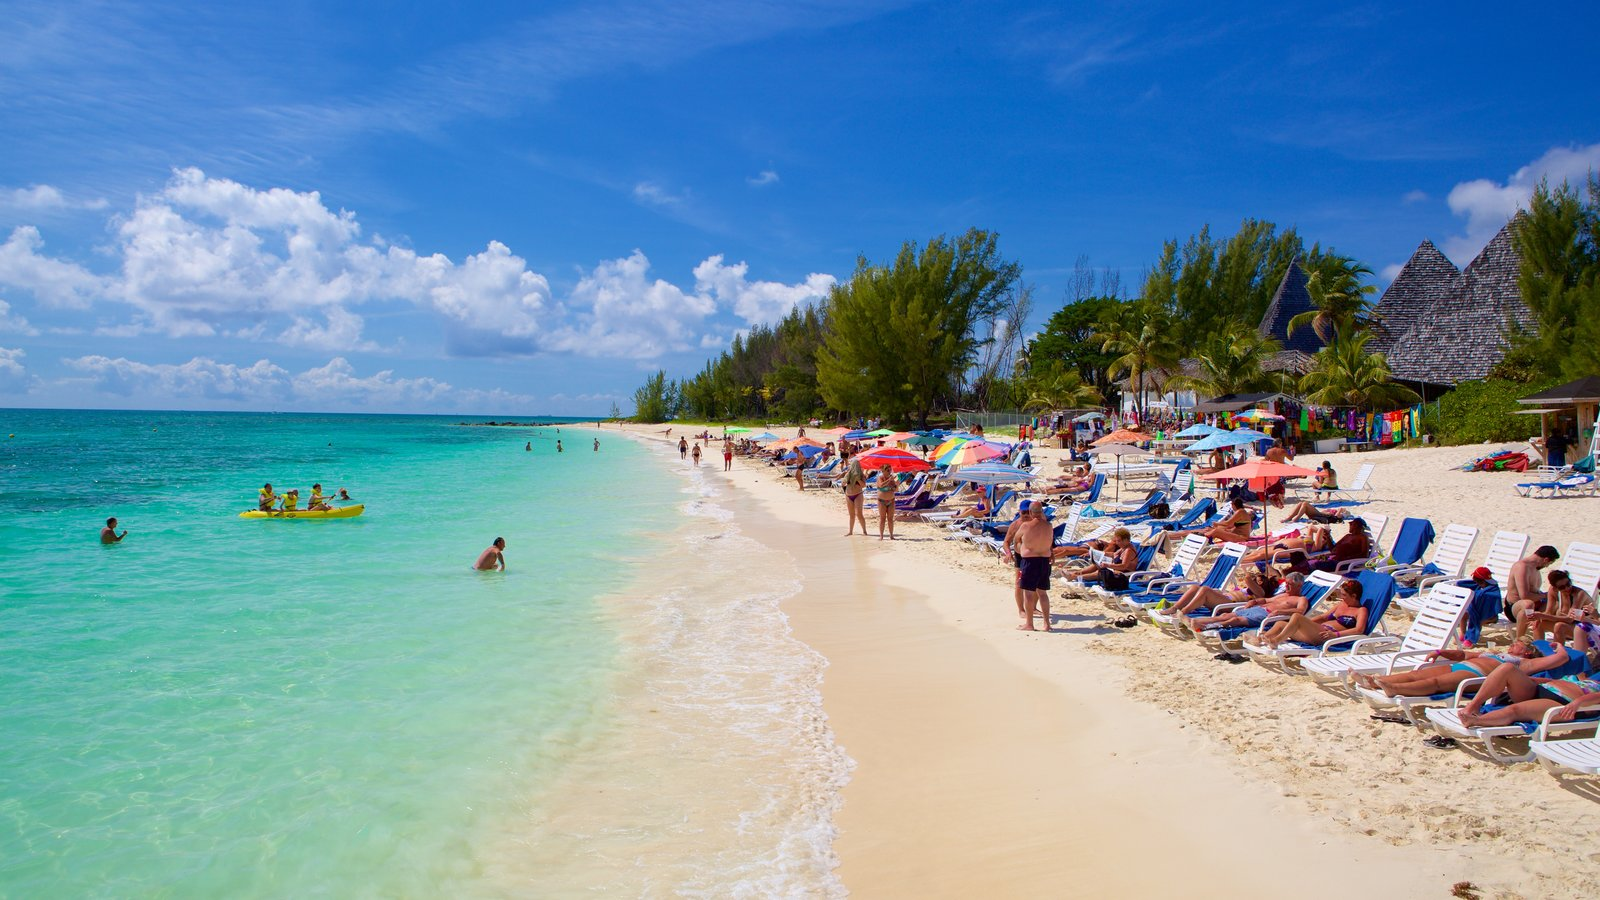 Taino Beach Which Includes A General Coastal Views And Luxury Hotel Or Resort